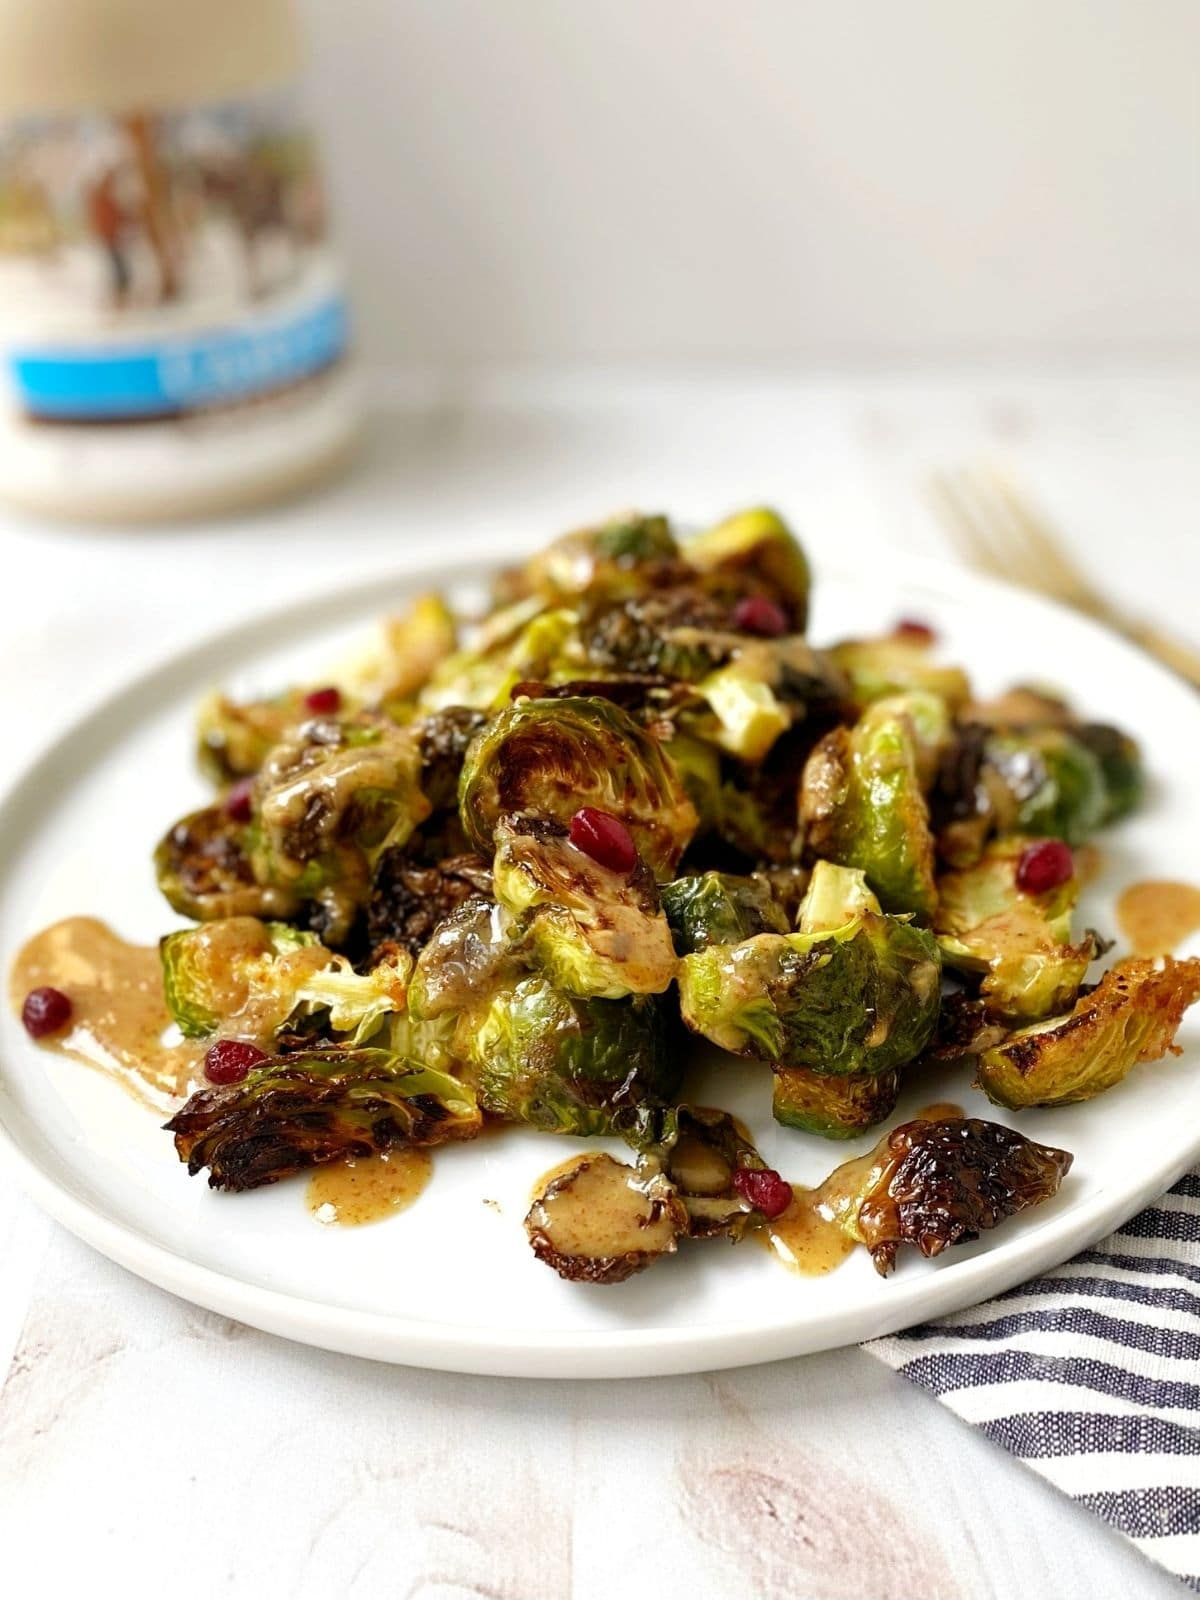 plate of brussels sprouts drizzled with glaze